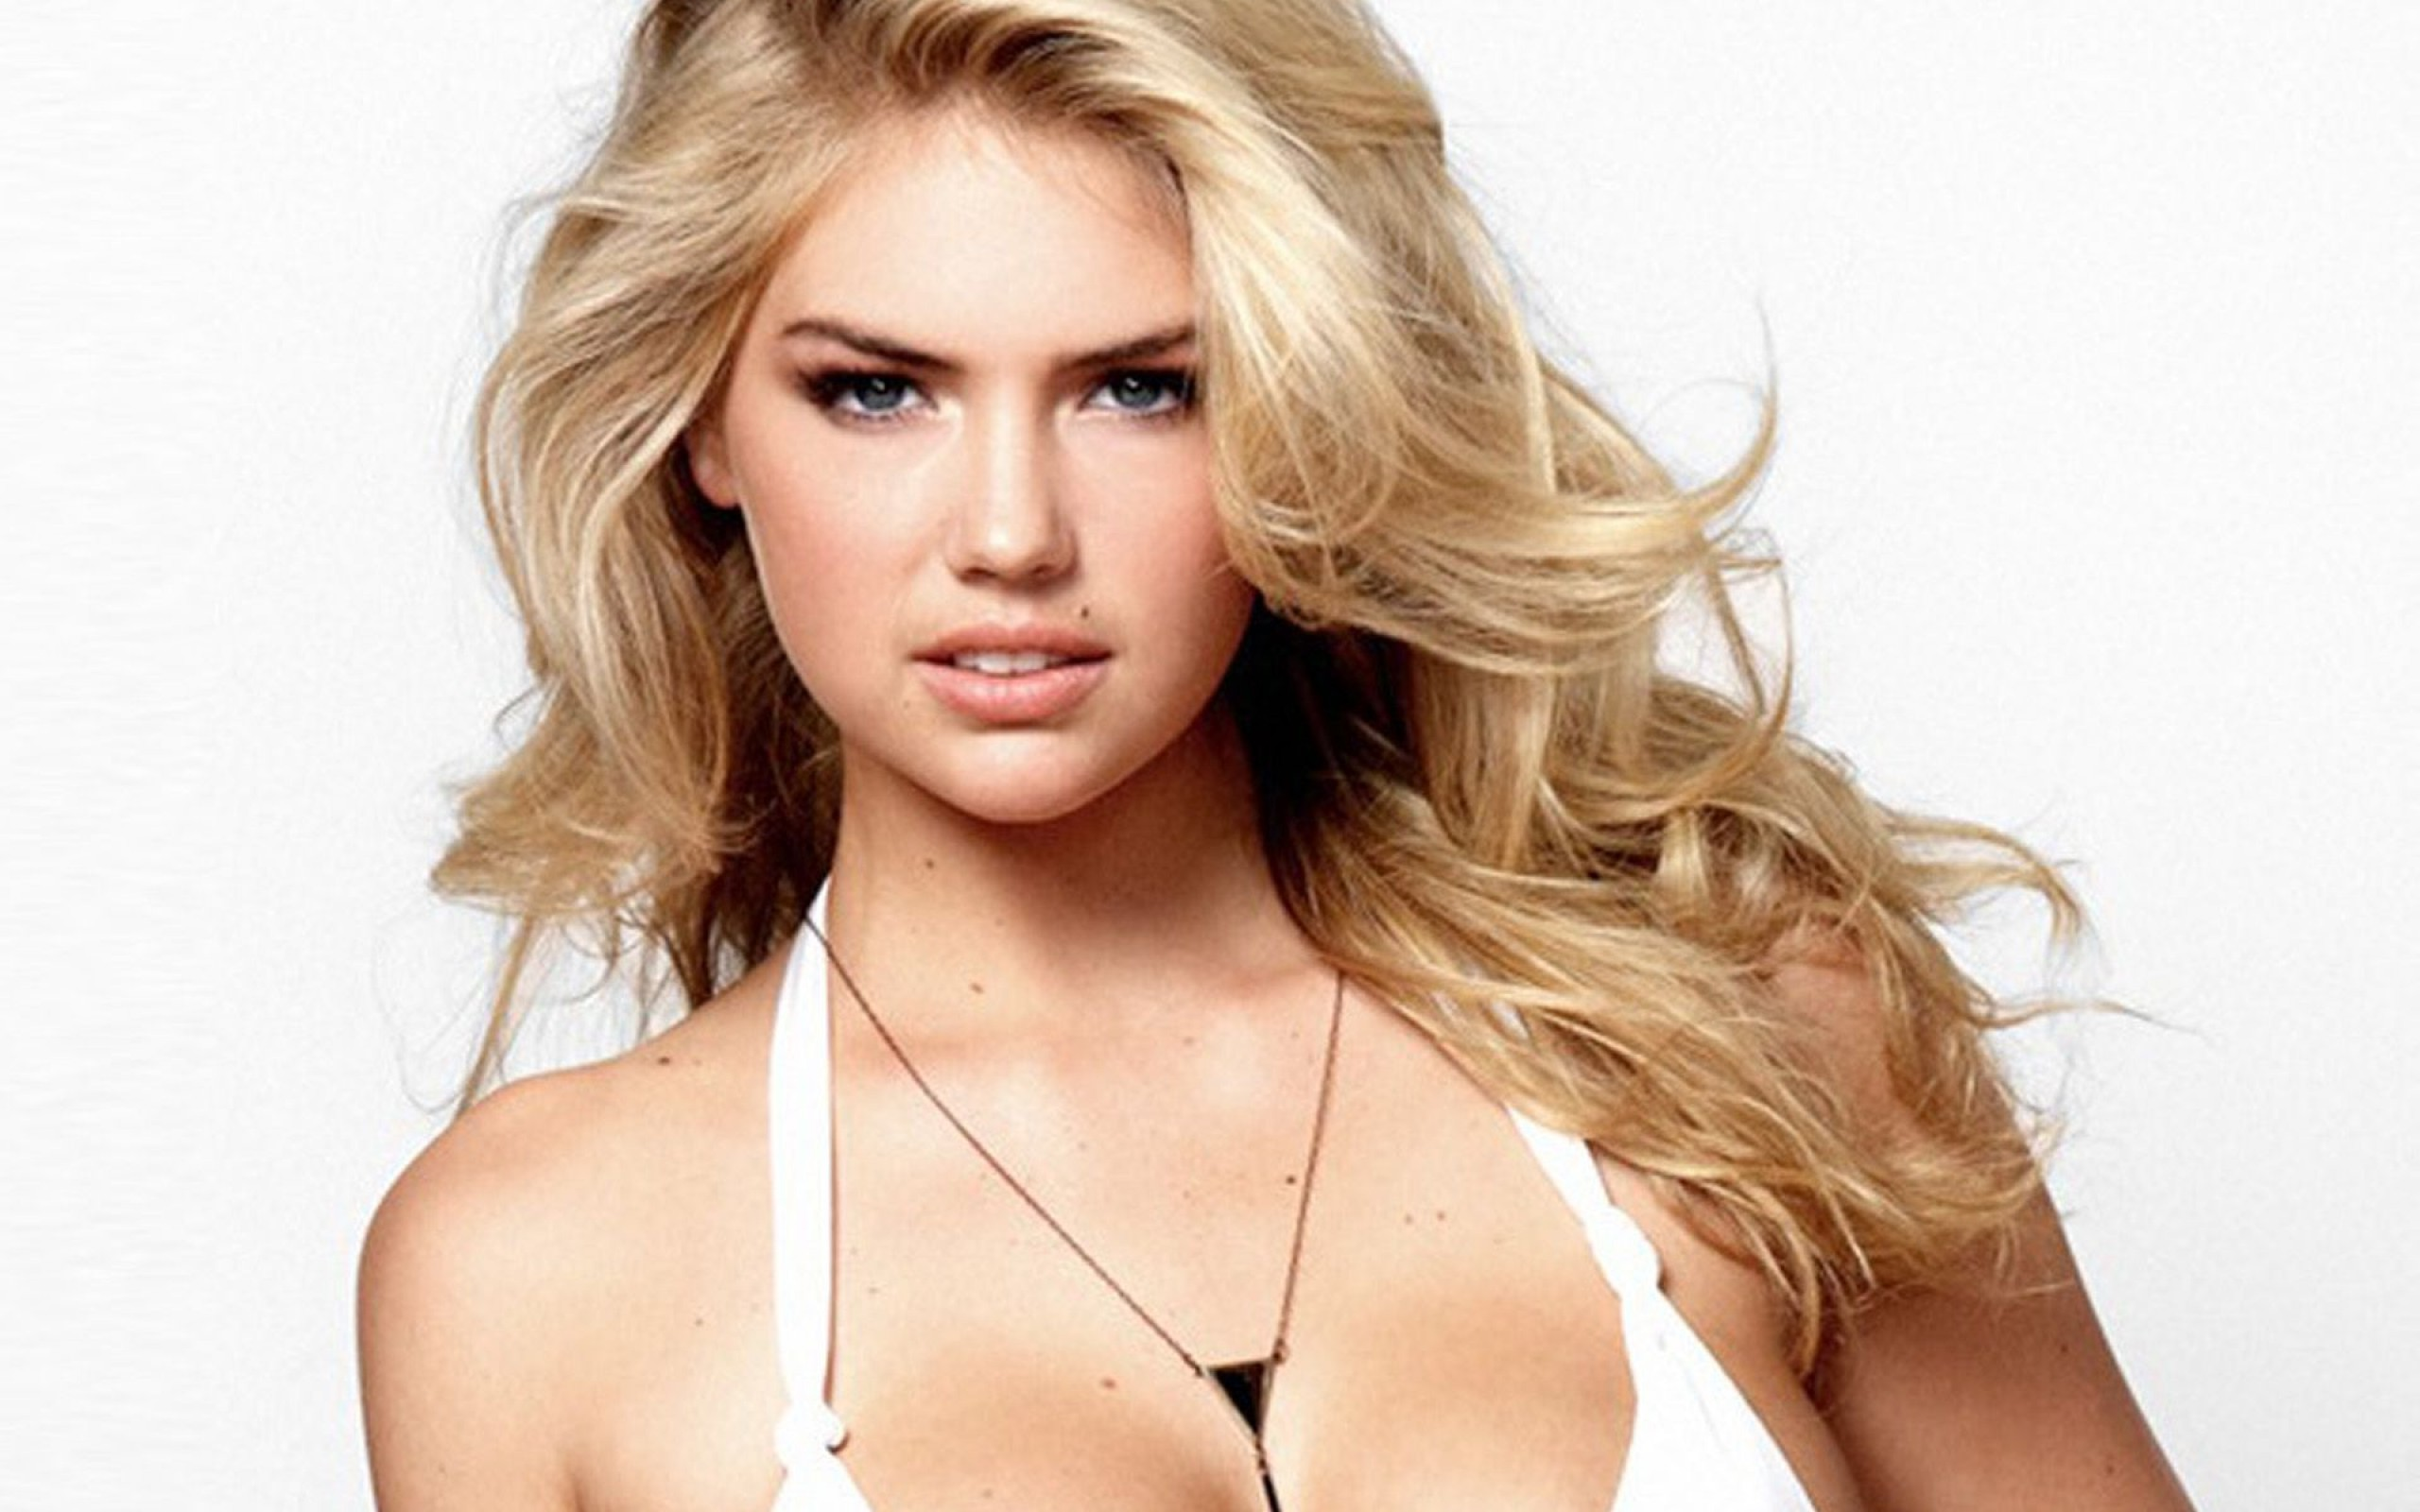 Kate upton wallpapers high resolution and quality download kate upton background voltagebd Images